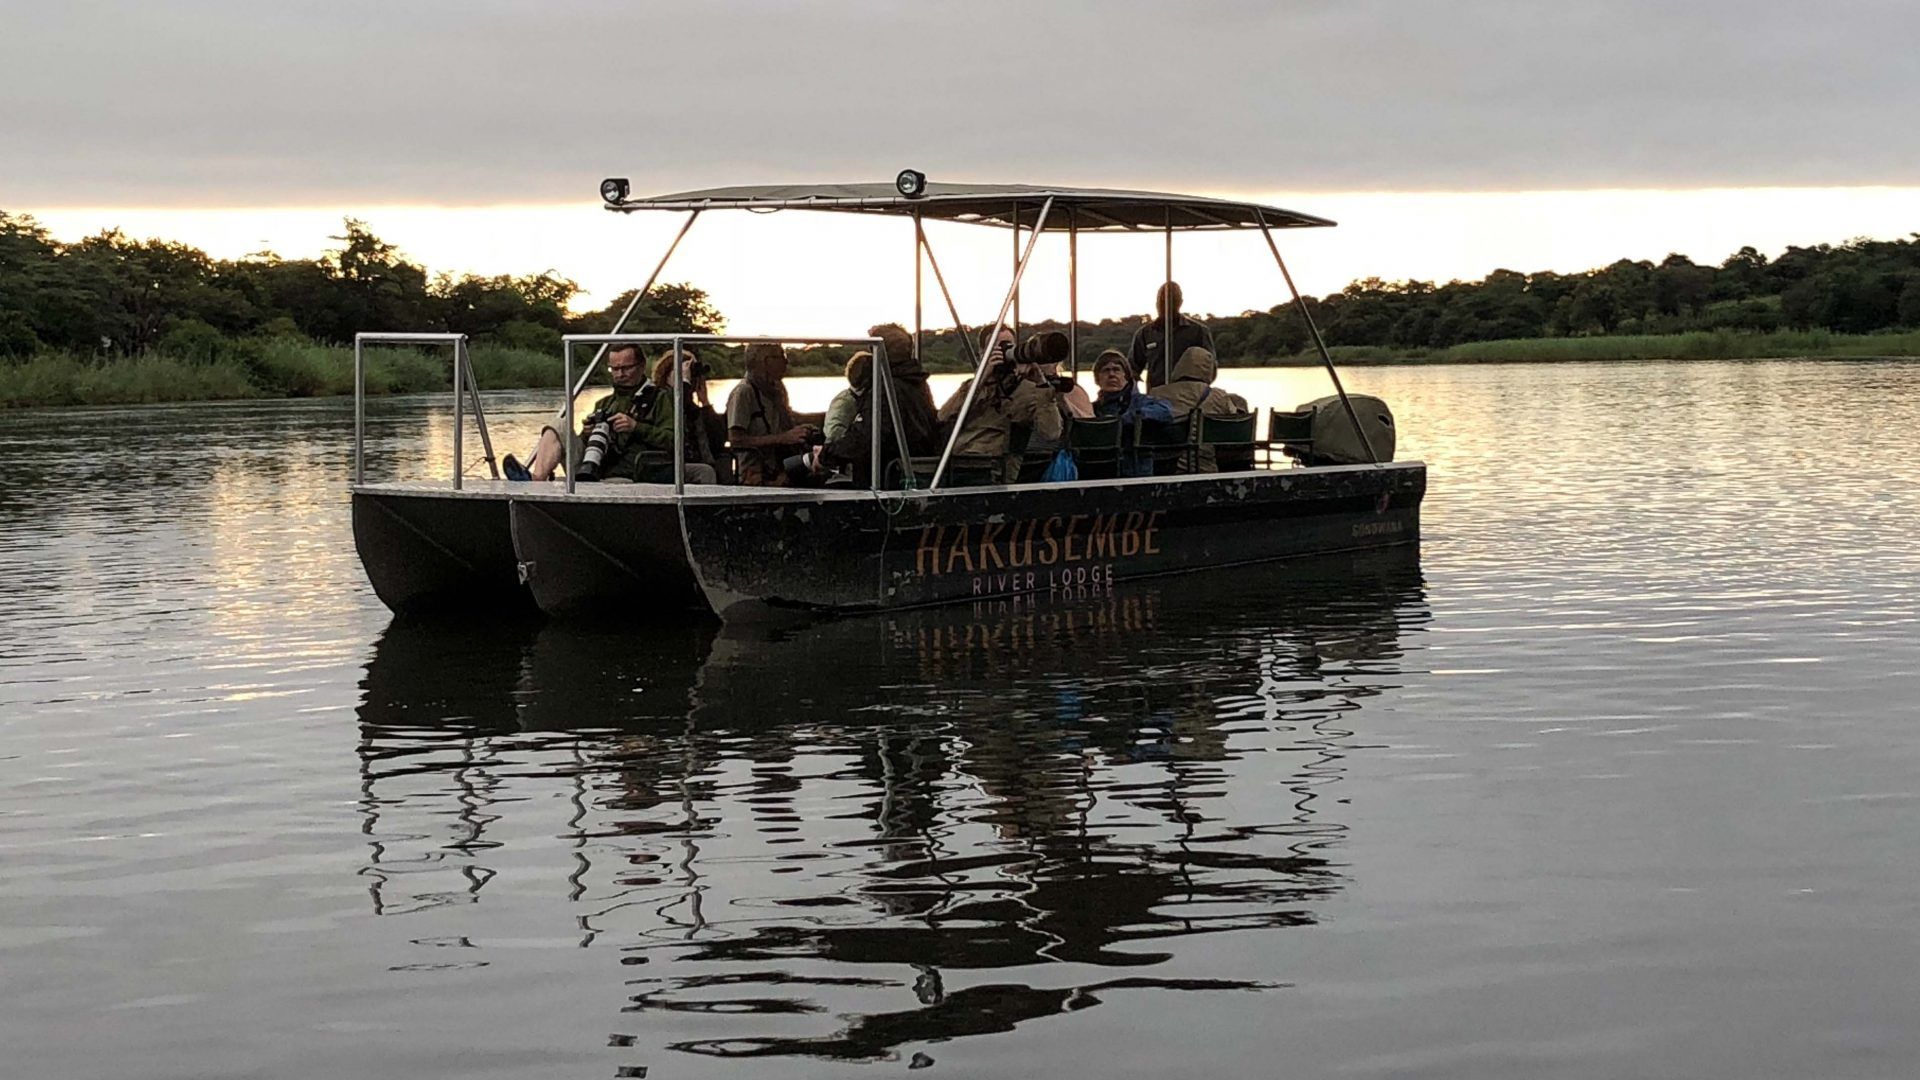 A craft from Hakusembe River Lodge navigates the waterways.